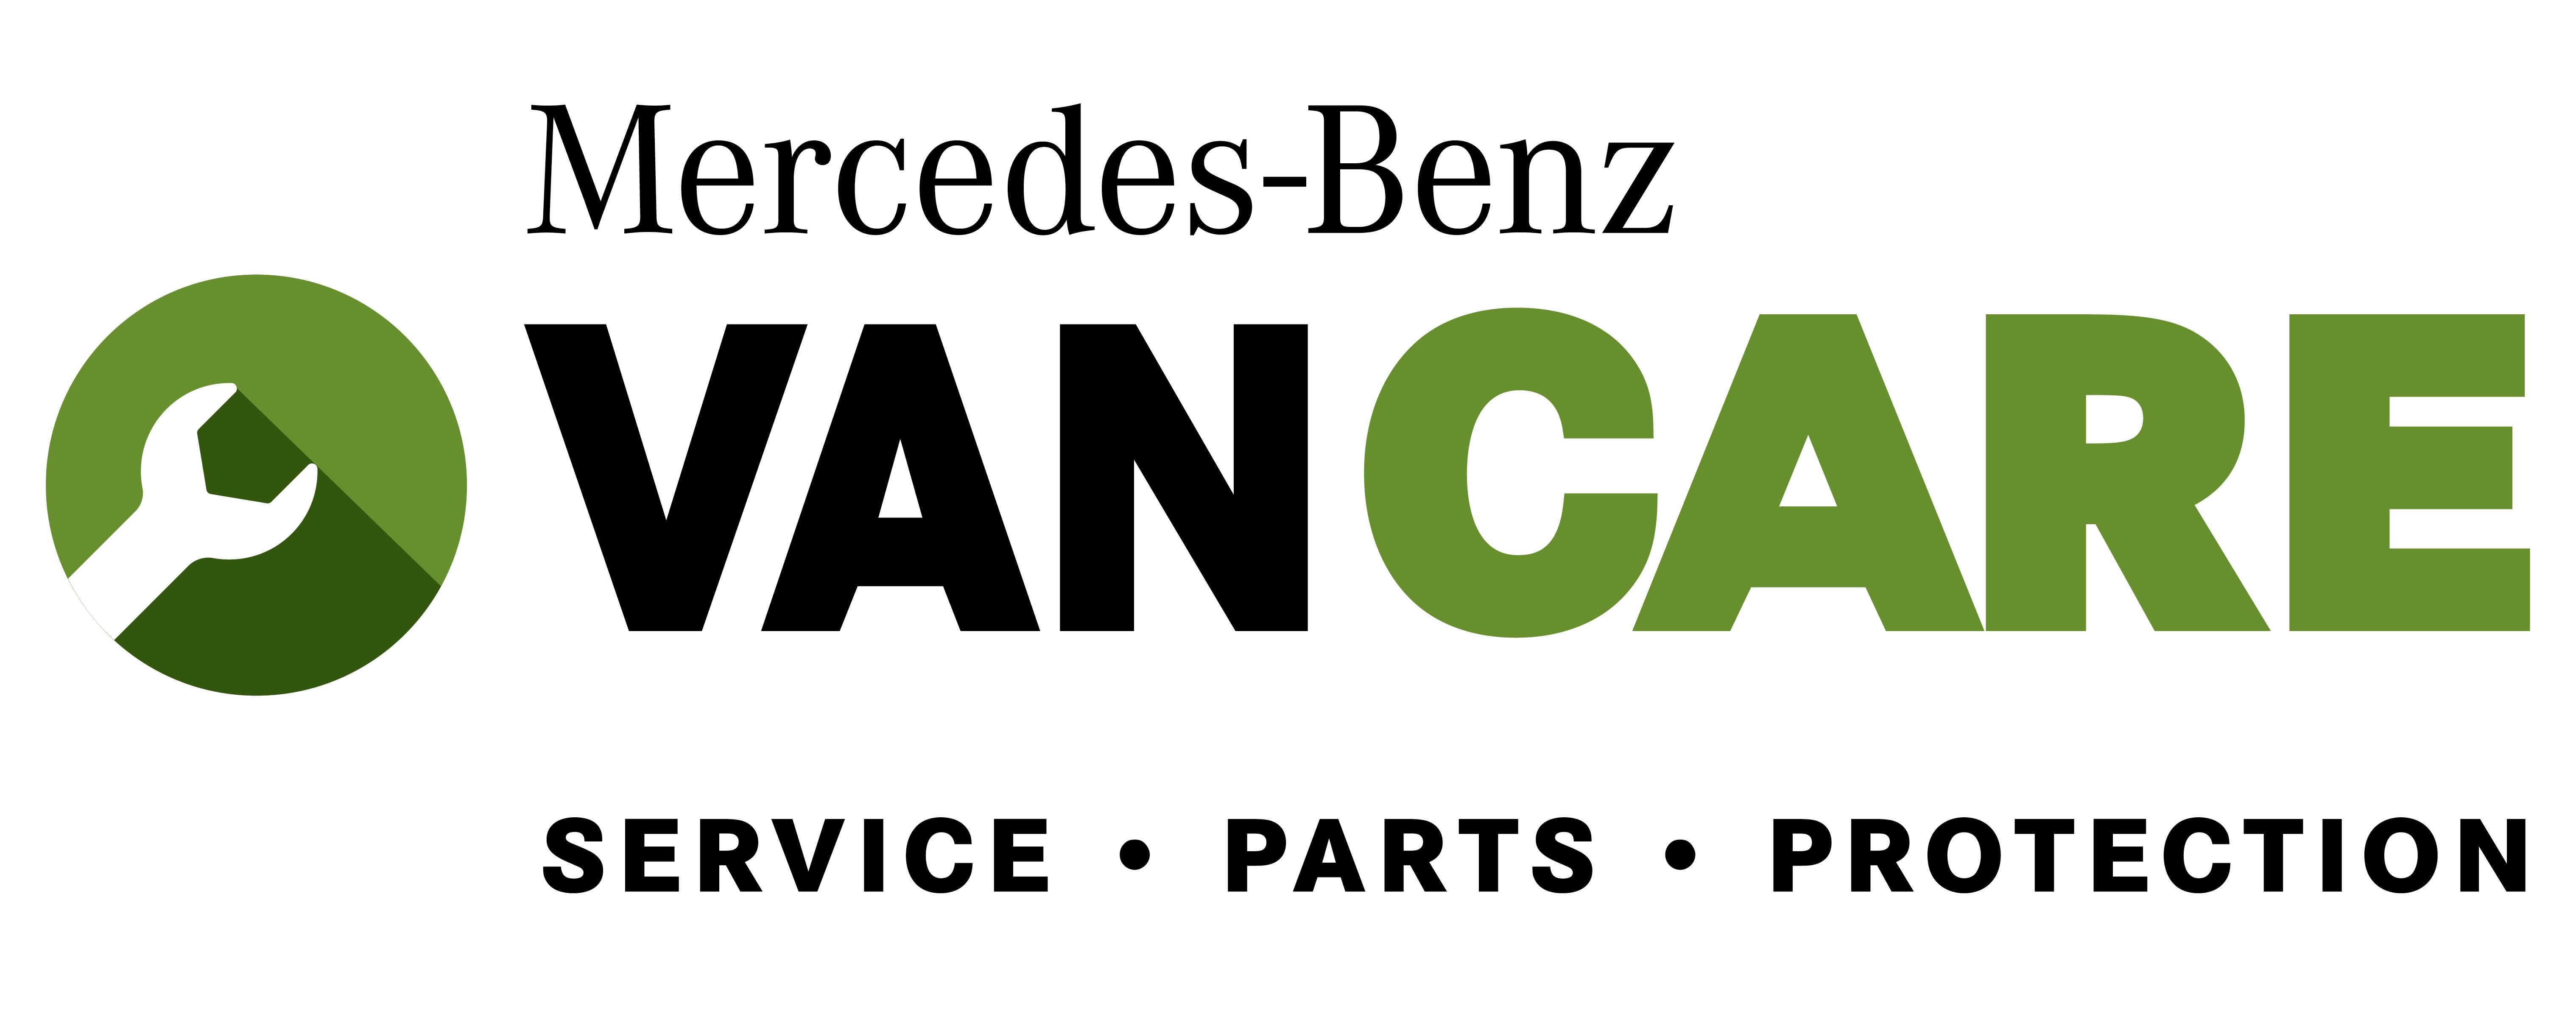 Mercedes benz vancare express mercedes benz of baton rouge for Mercedes benz college graduate program